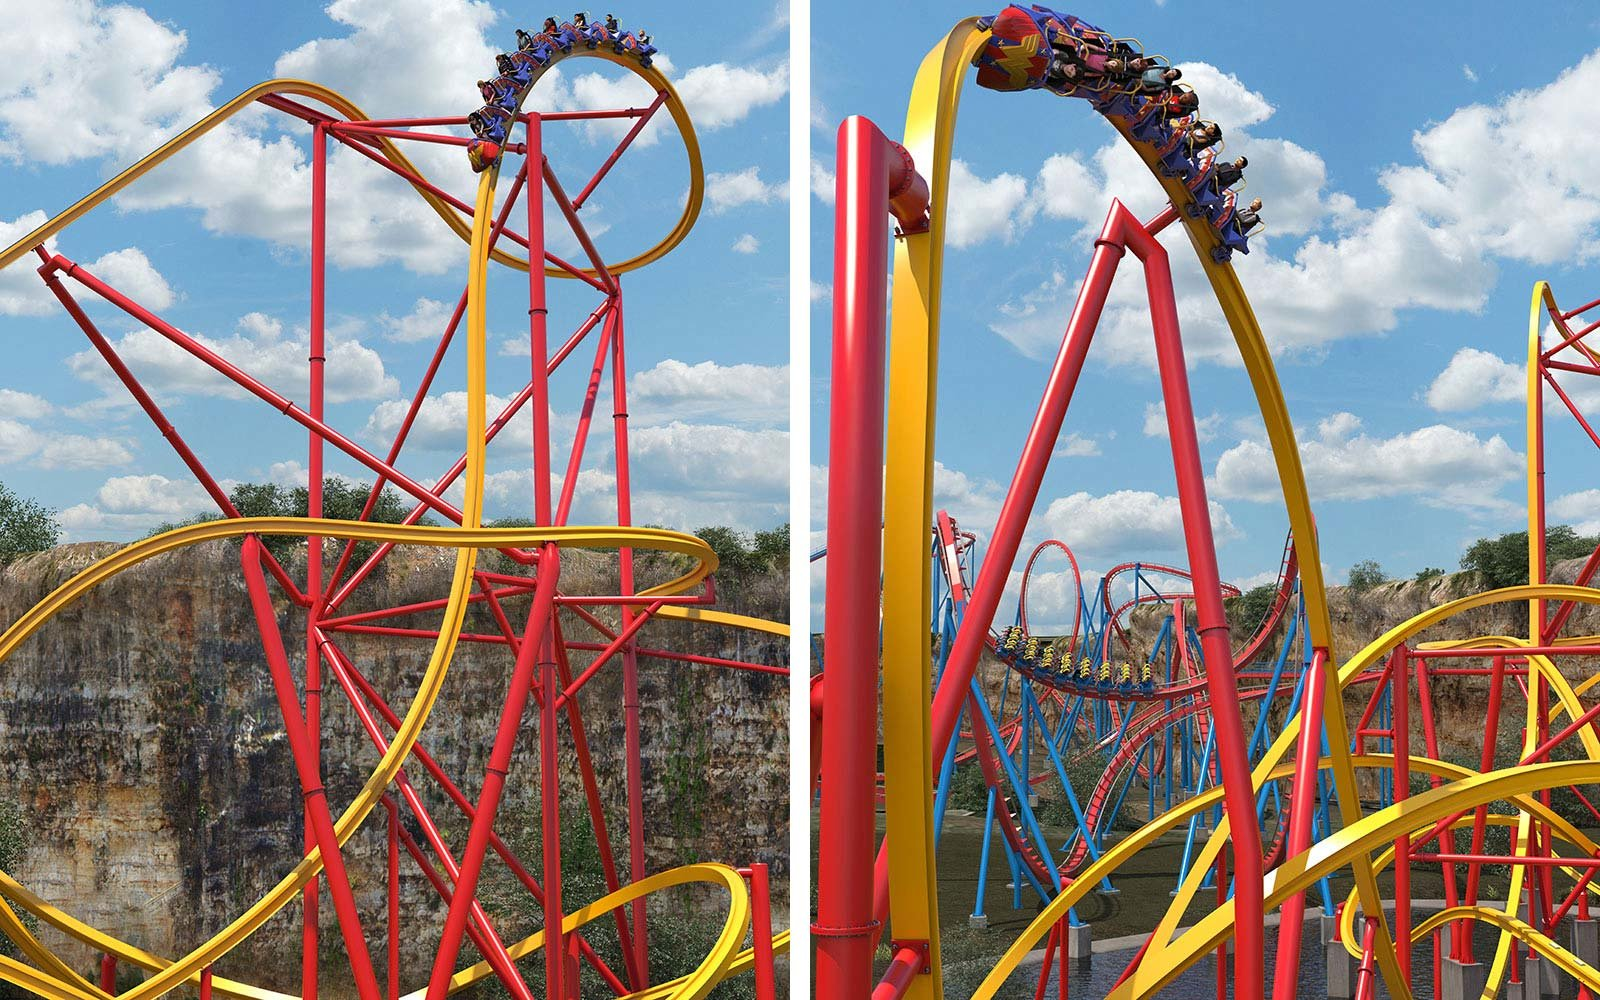 This Wonder Woman Roller Coaster Is Going To Make History, Naturally